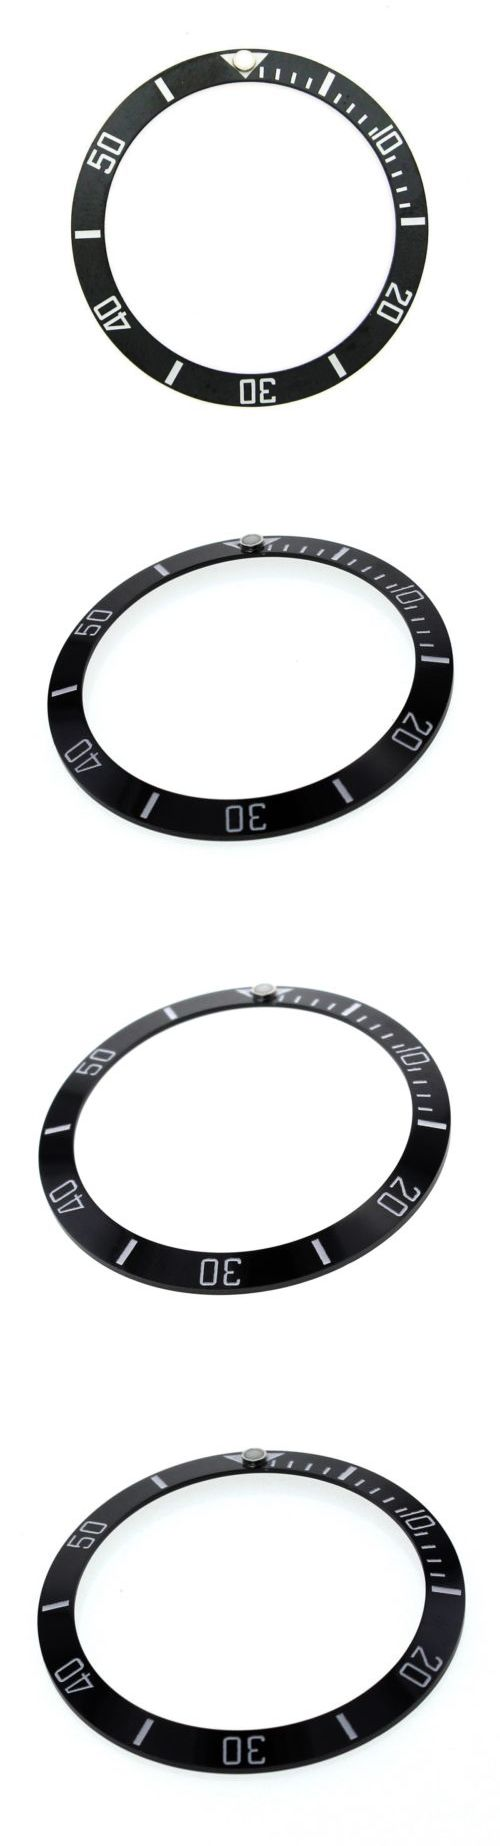 Bezels and Inserts 57714: Bezel Insert Ceramic For 40Mm Invicta Pro Diver 8926Ob 8926C Engraved Black BUY IT NOW ONLY: $59.9